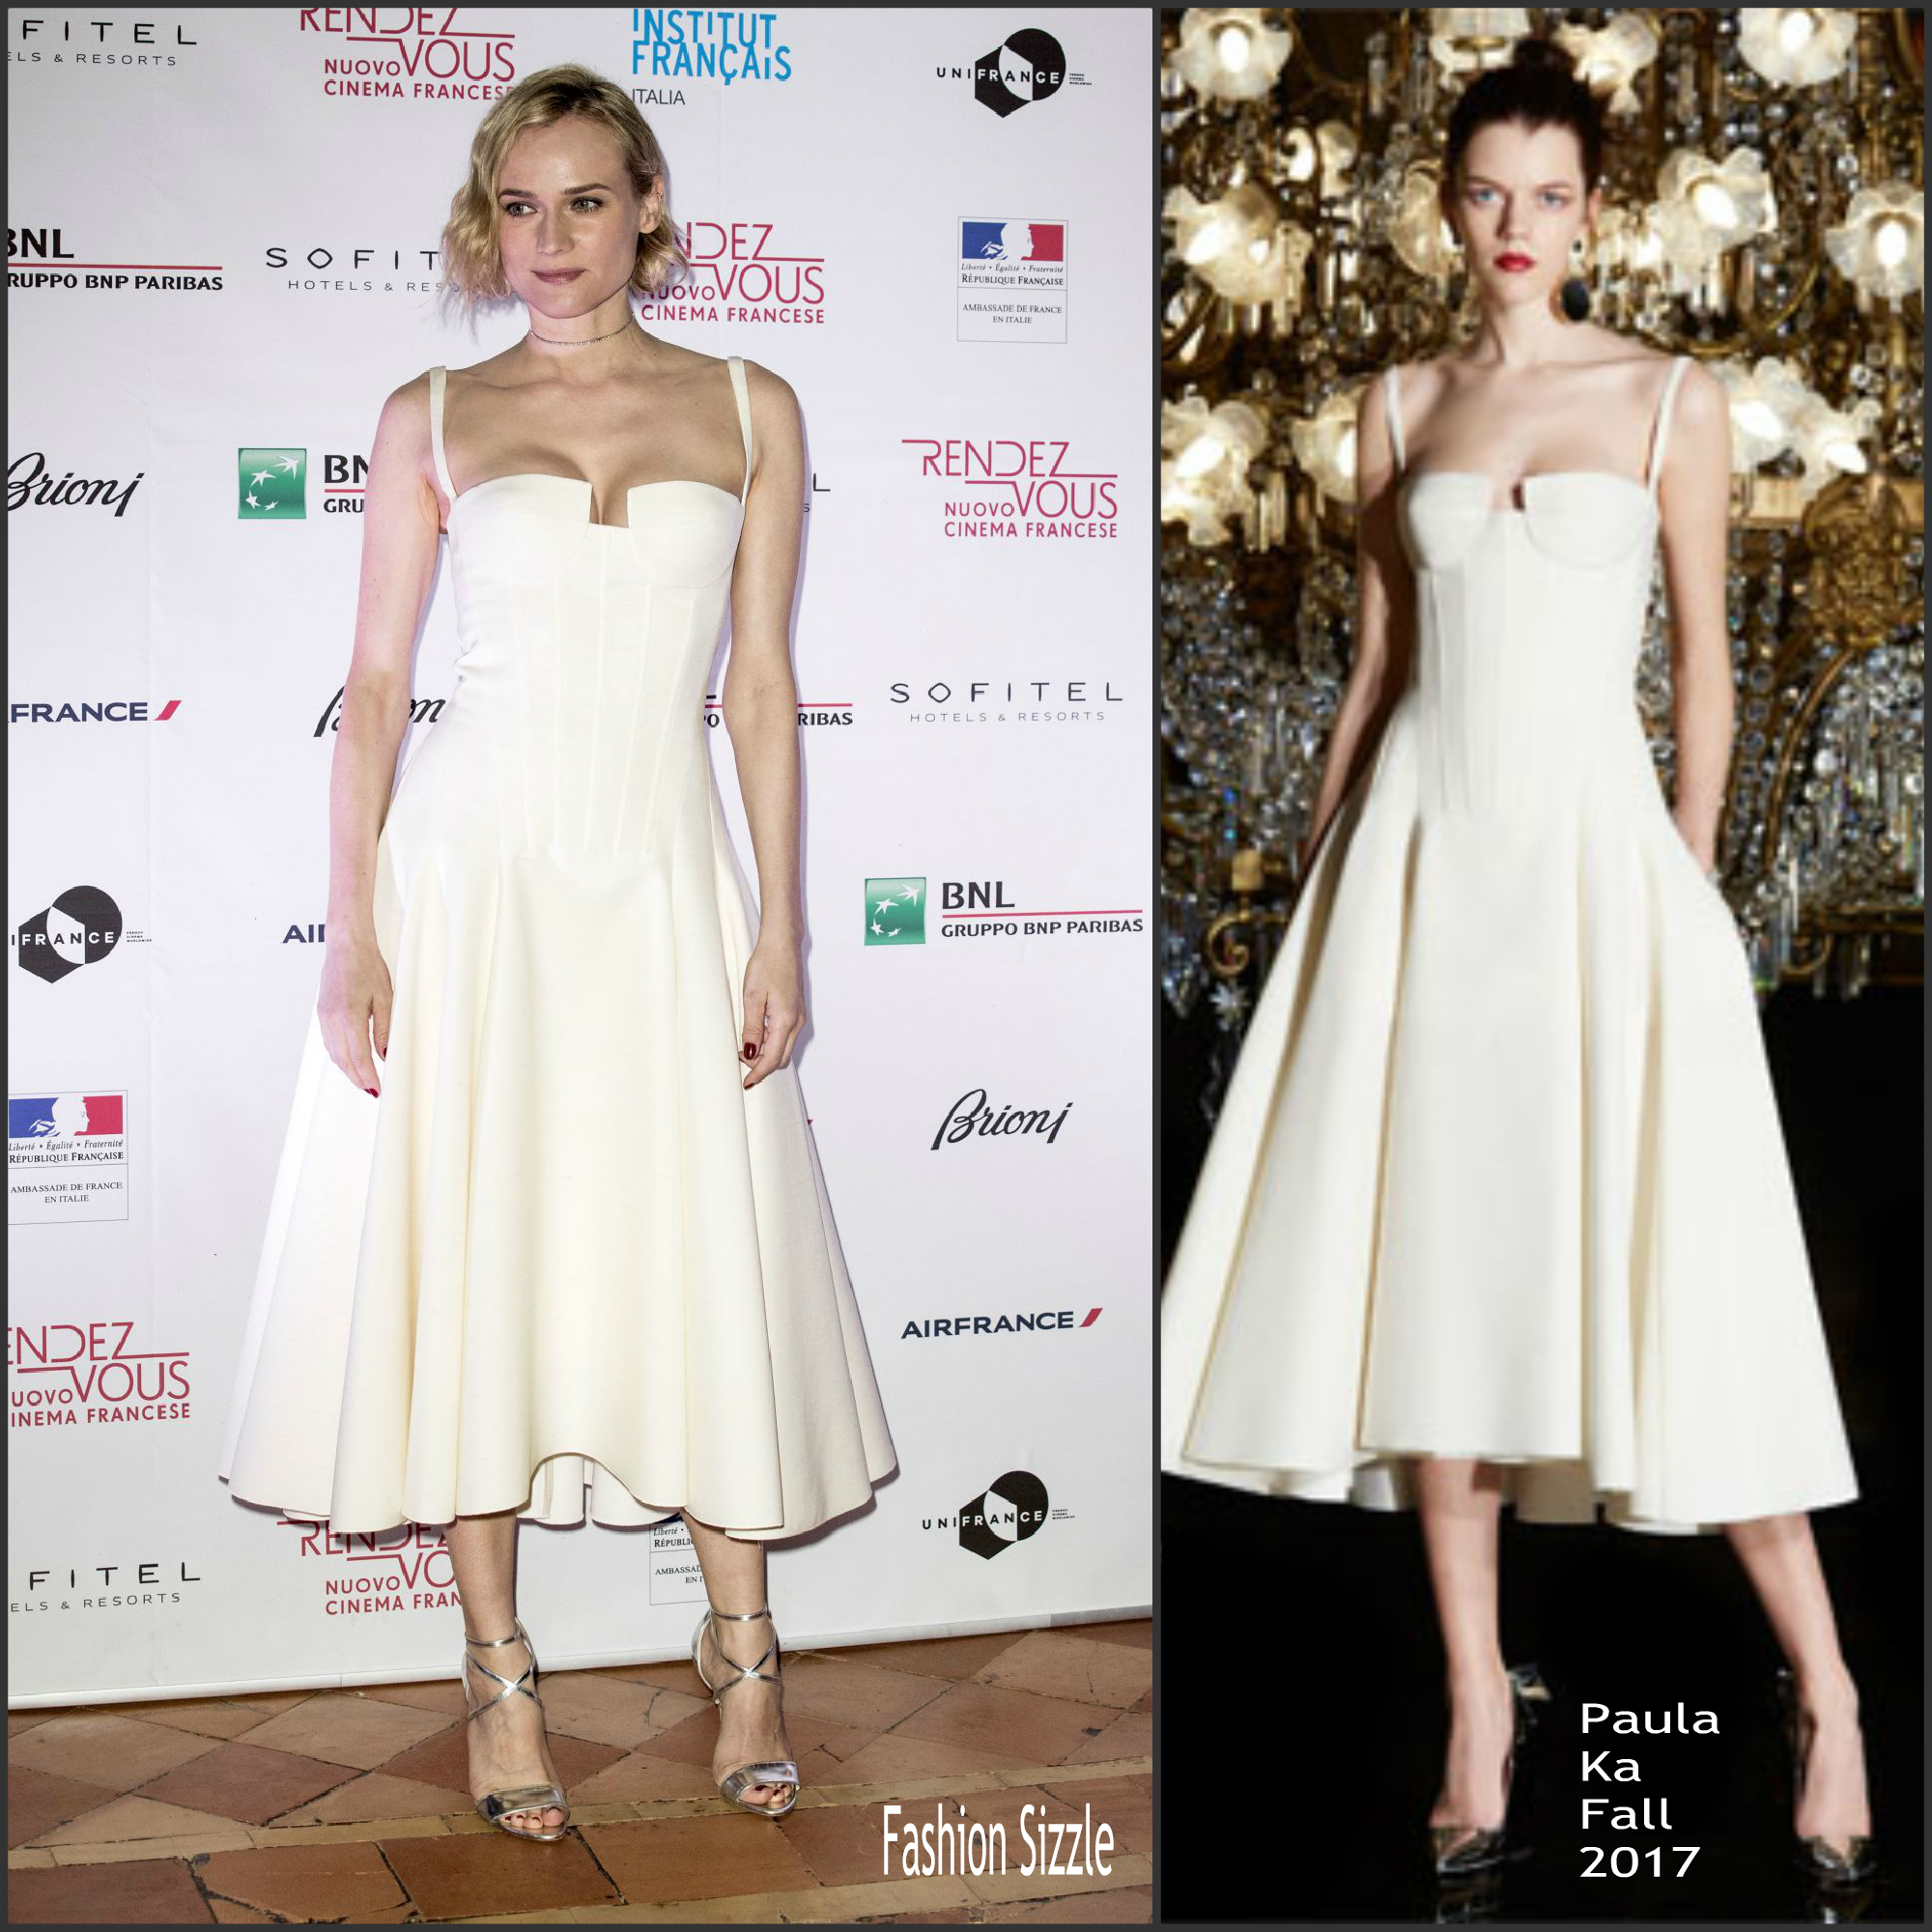 Diane Kruger In Paule Ka At Rendez Vous Nouveau Cinema Francais Opening Ceremony Fashion Sizzle